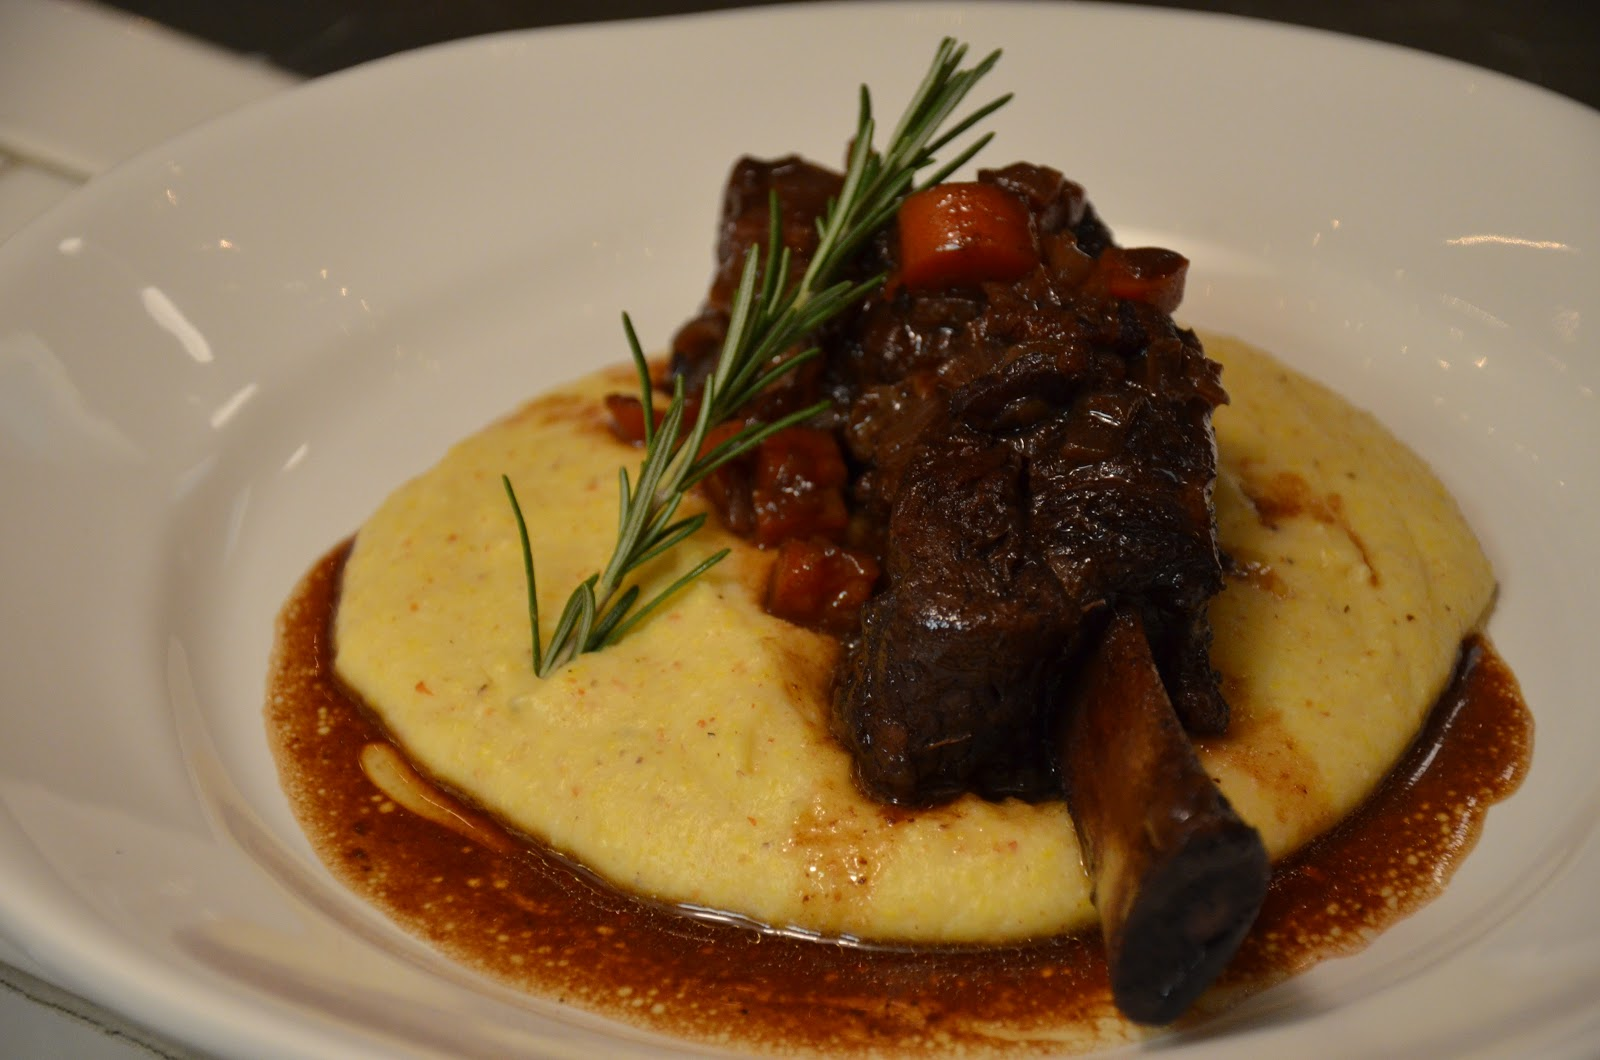 food for scot: Braised Short Ribs over Creamy Goat Cheese Polenta